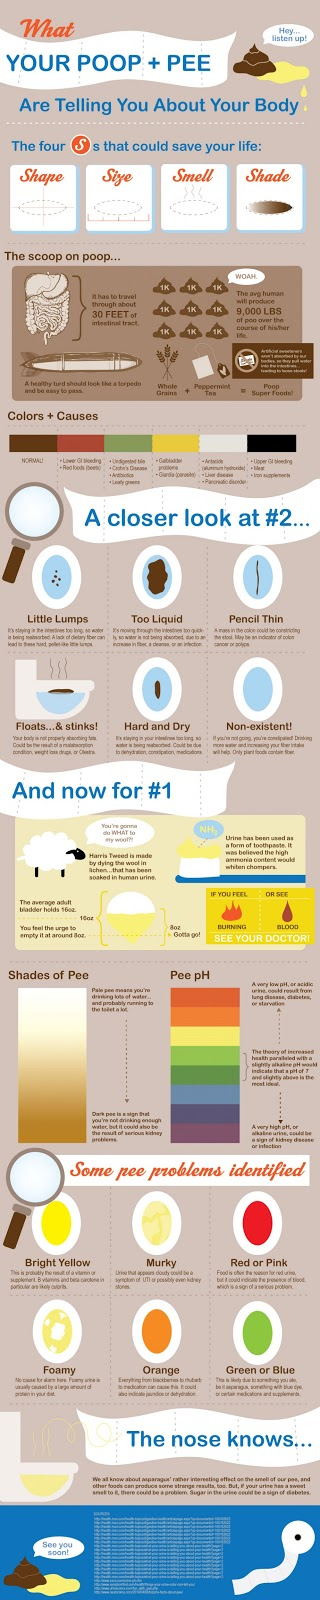 poop and pee infographic